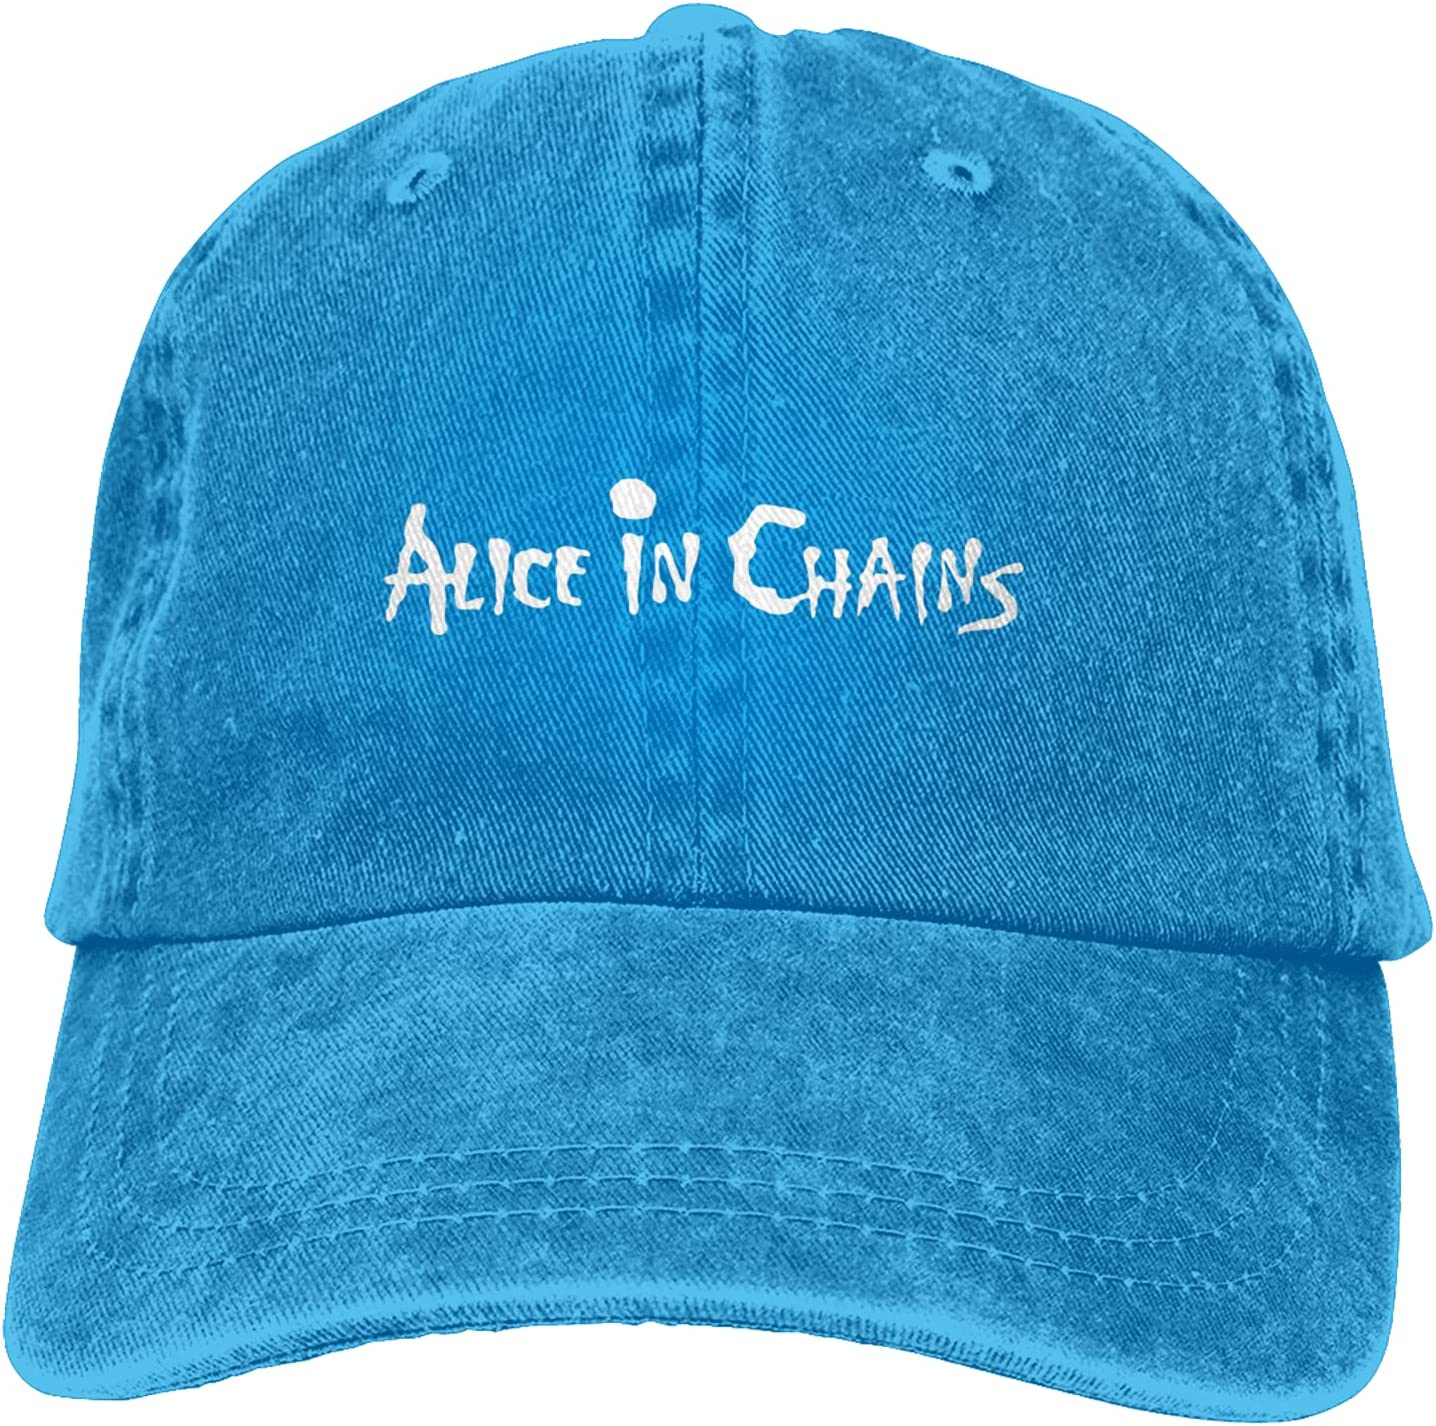 Alice in Chains Cowboy Hat Unisex Adjustable Hat Circumference Size Pure Cotton Denim Wash Water Outdoor